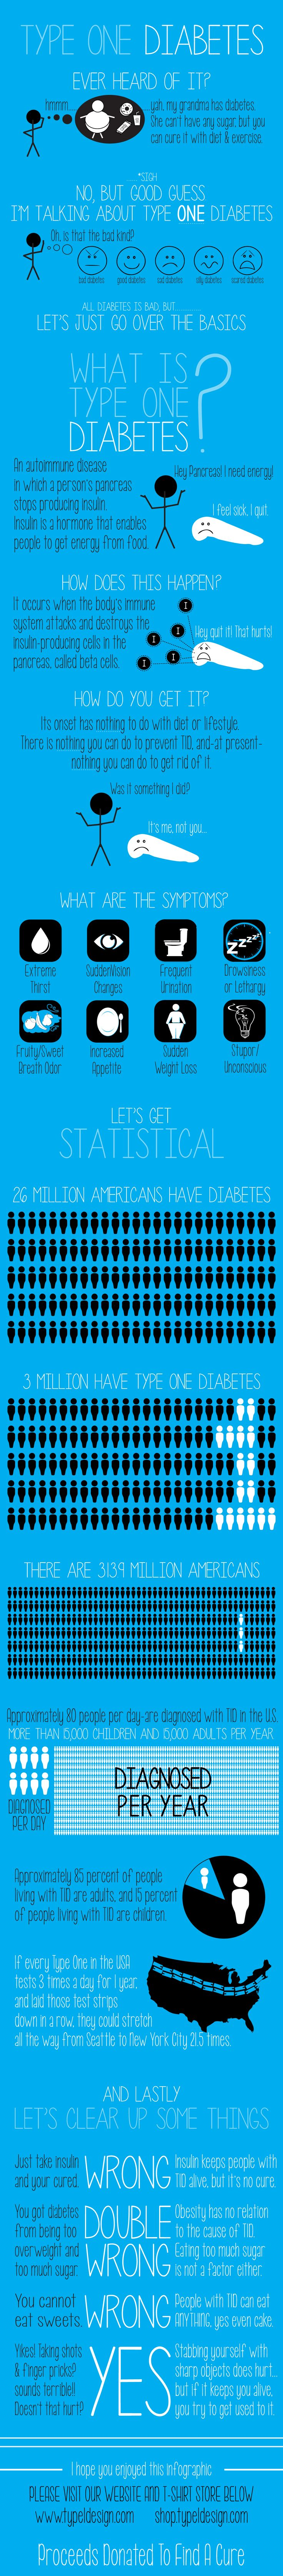 Type 1 Diabetes Infographic -  Lets spread some knowledge as November is Diabetes Awareness Month.